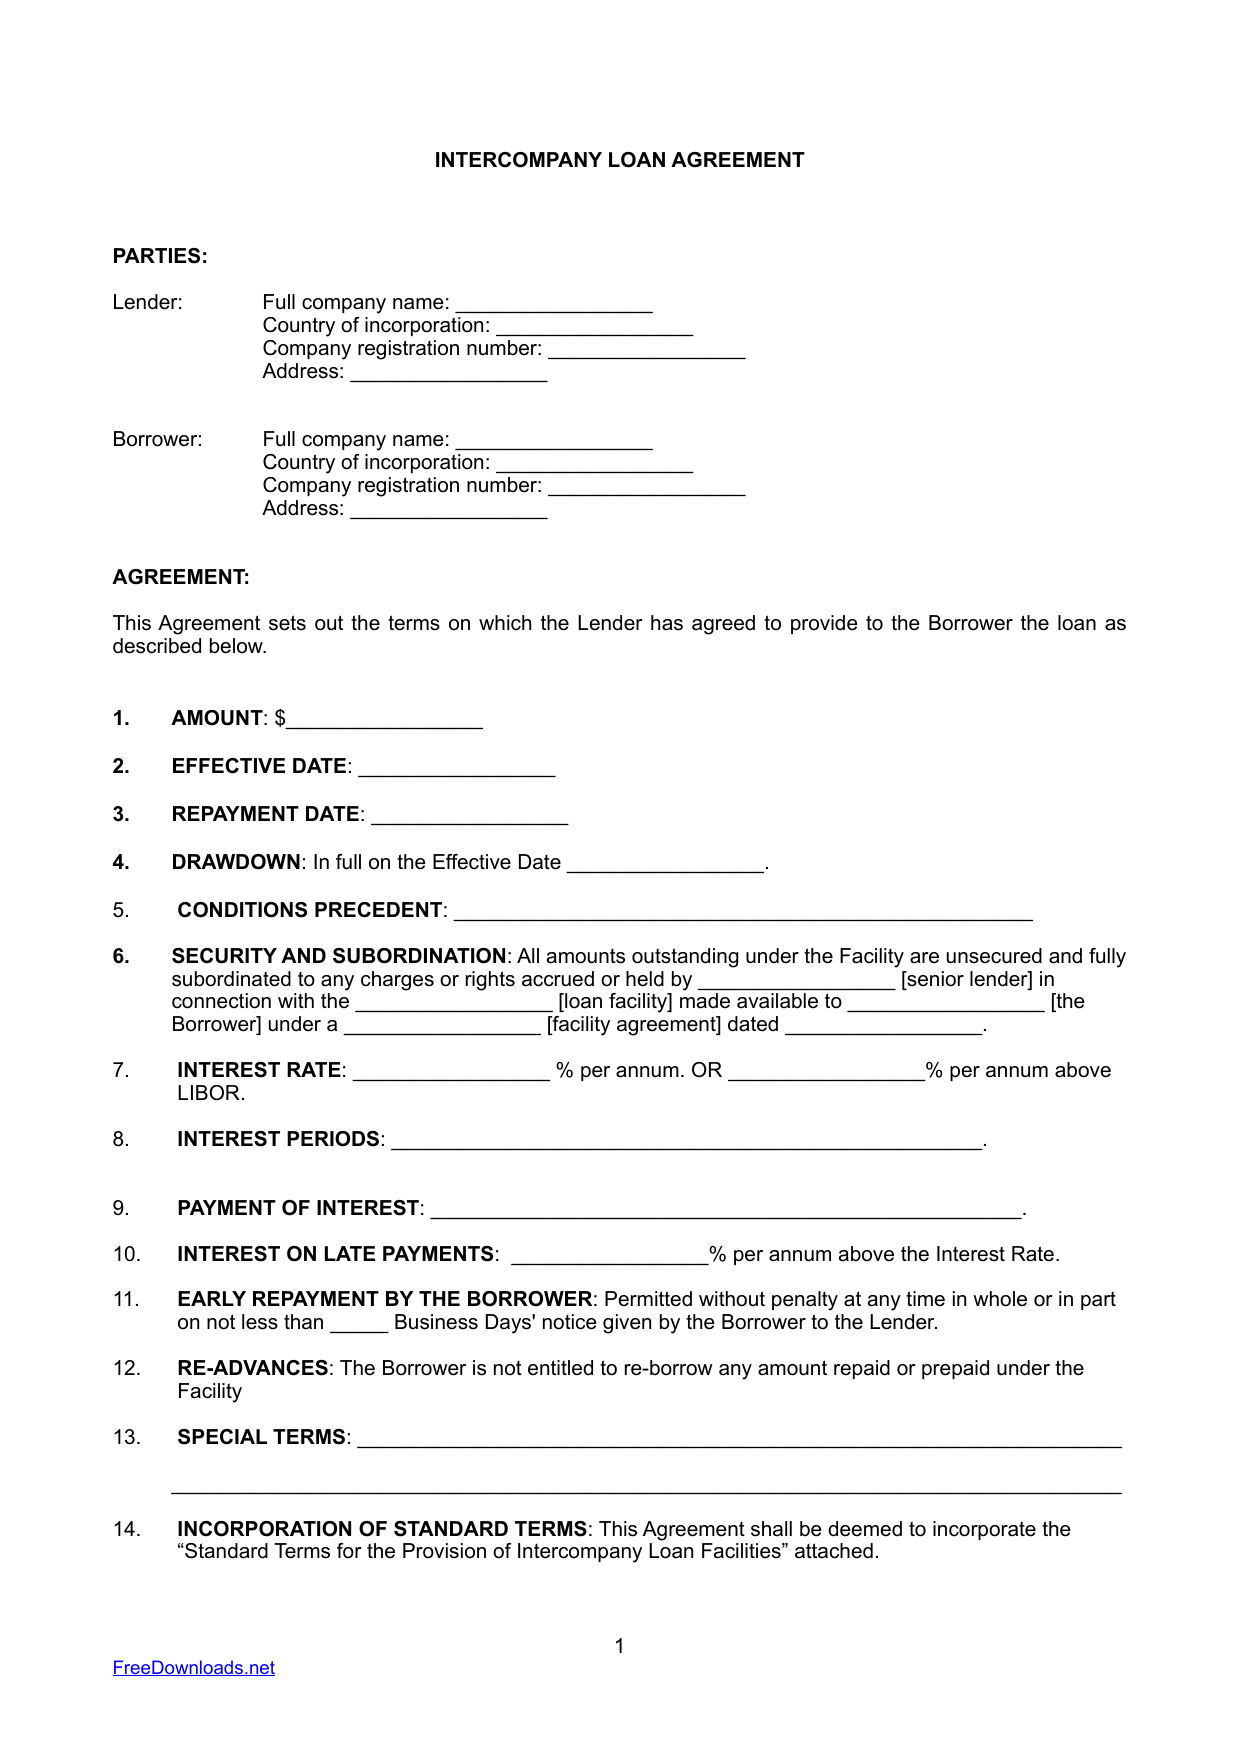 Download Intercompany Loan Agreement Template Pdf Rtf